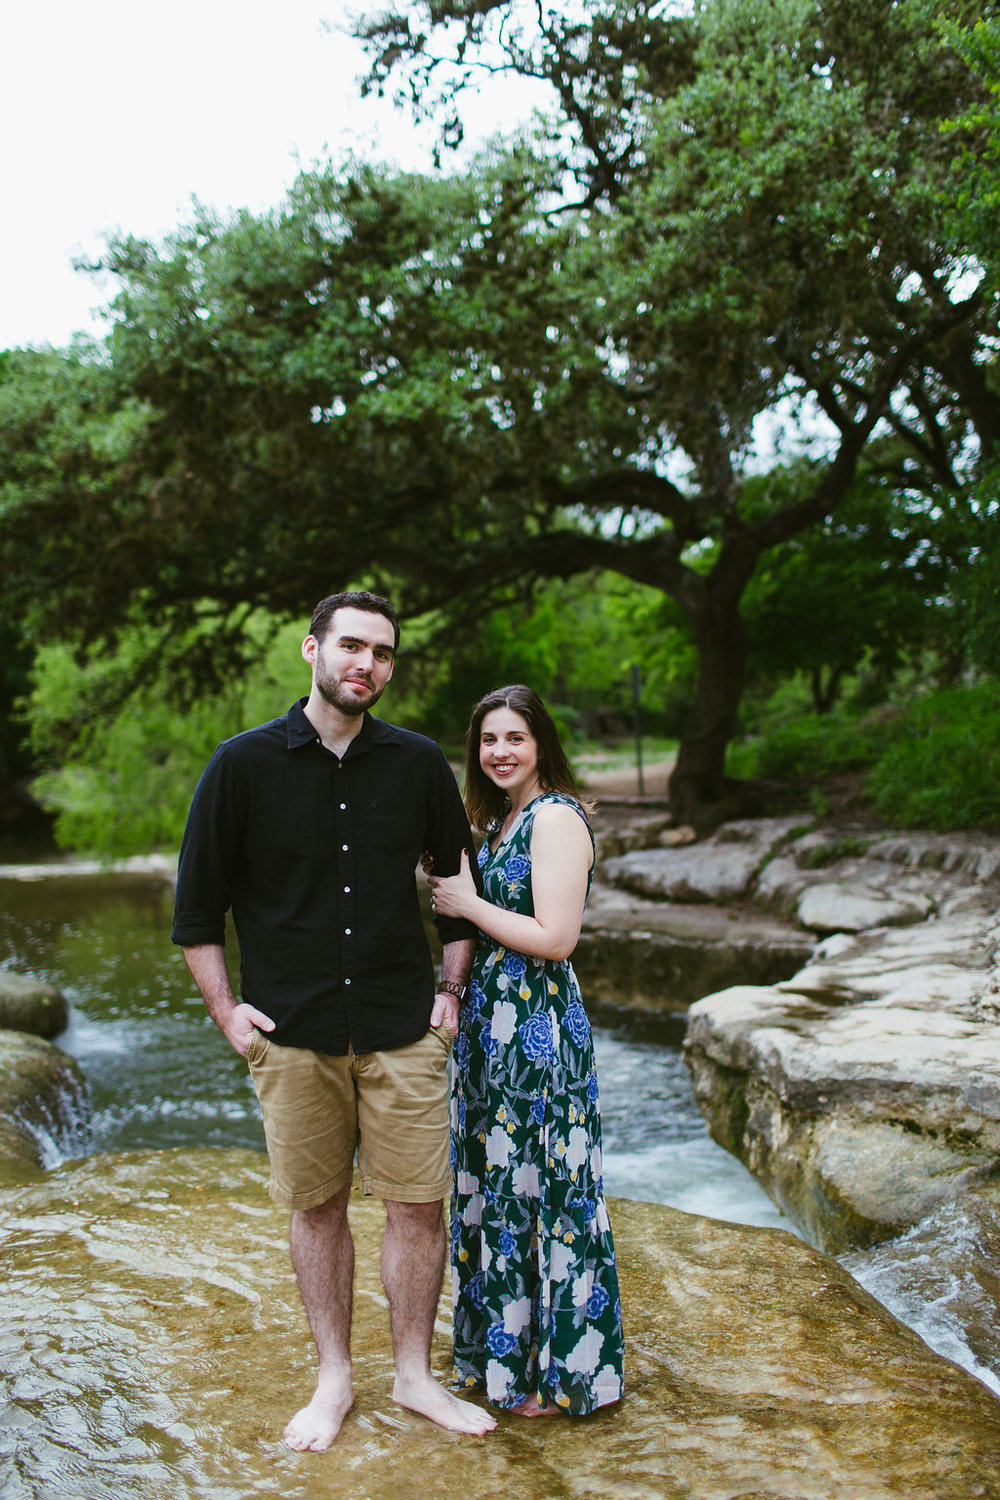 Paige-Newton-Photography-Bull-Creek-Engagement-Session0006.jpg